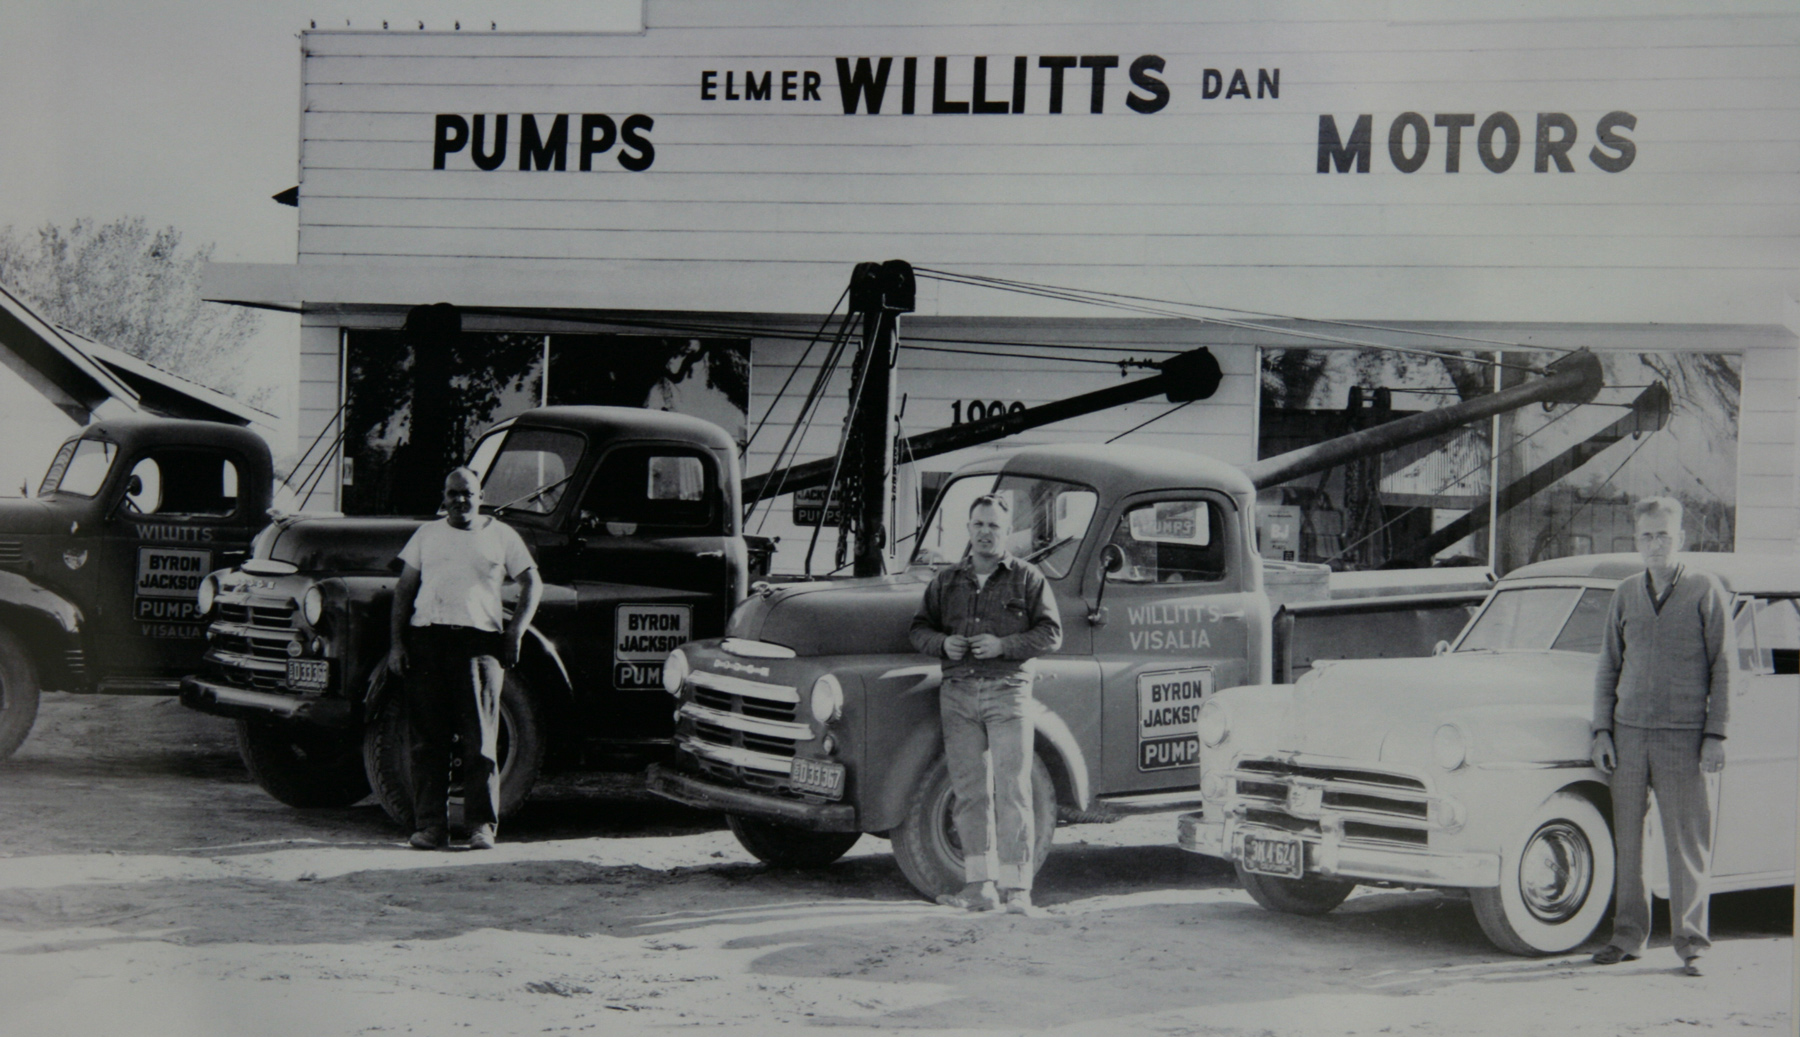 Willitts Pump since 1943